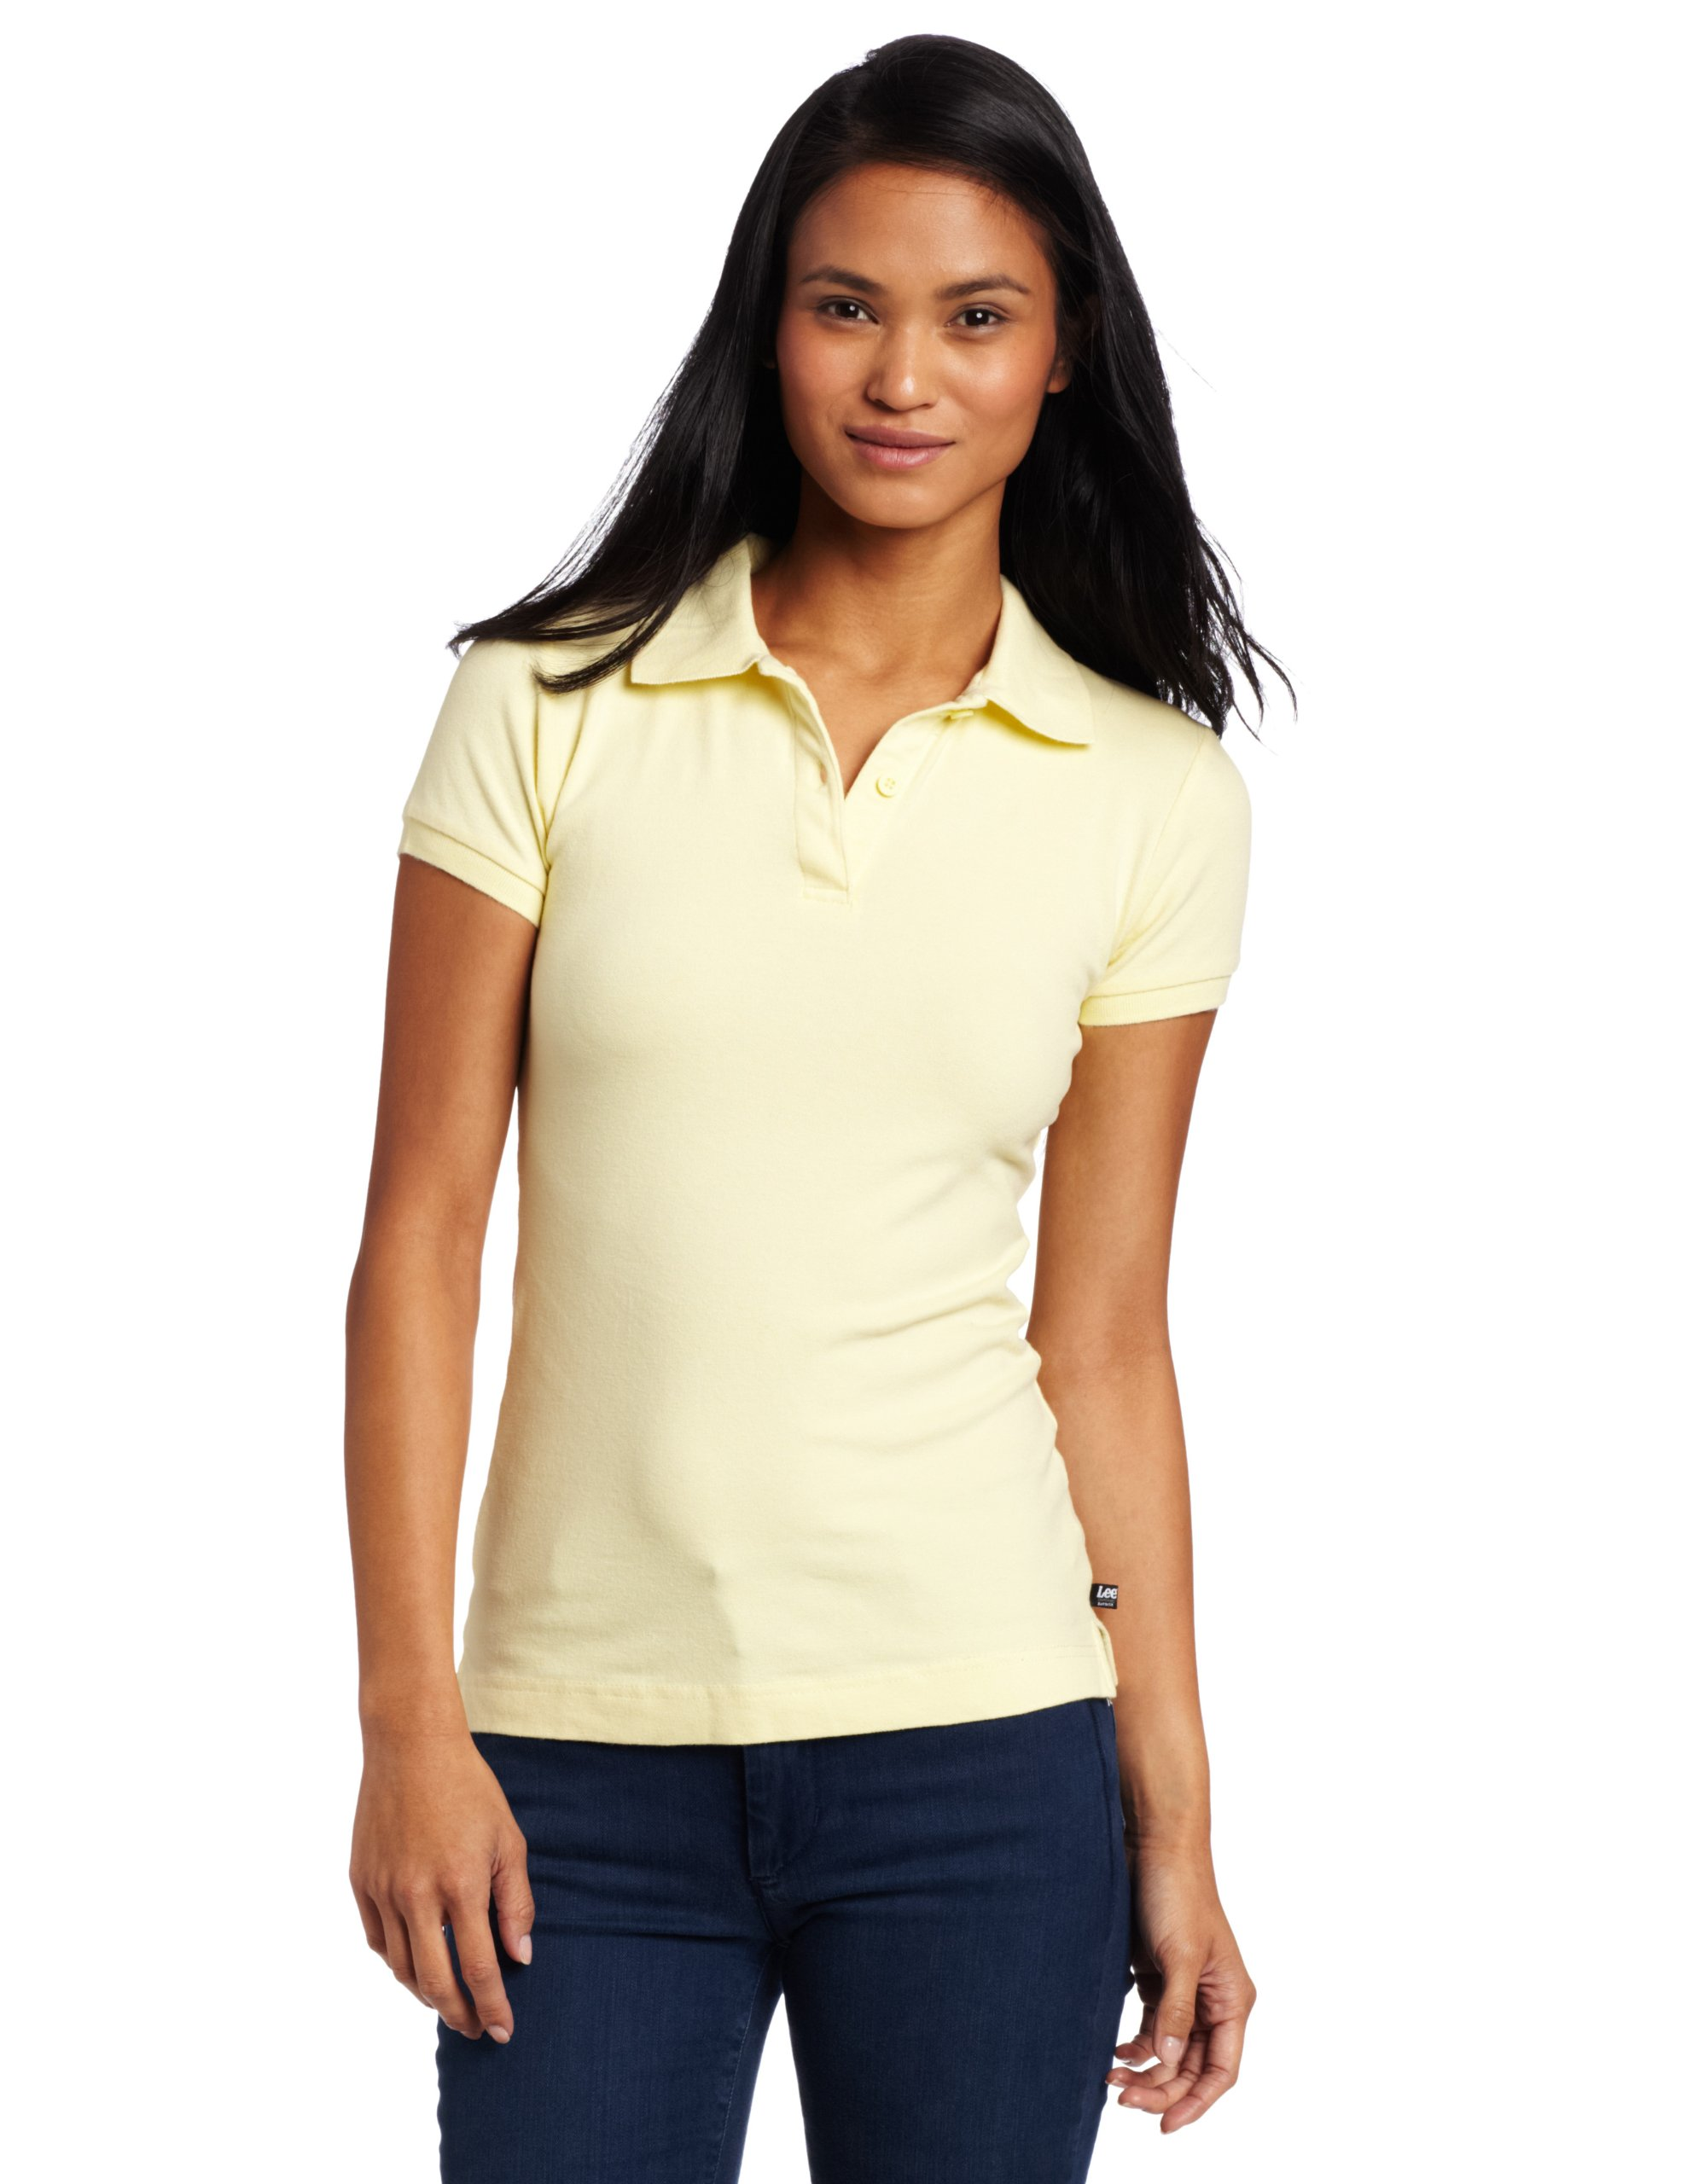 Lee Uniforms Juniors Stretch Pique Polo, Yellow, Medium by LEE